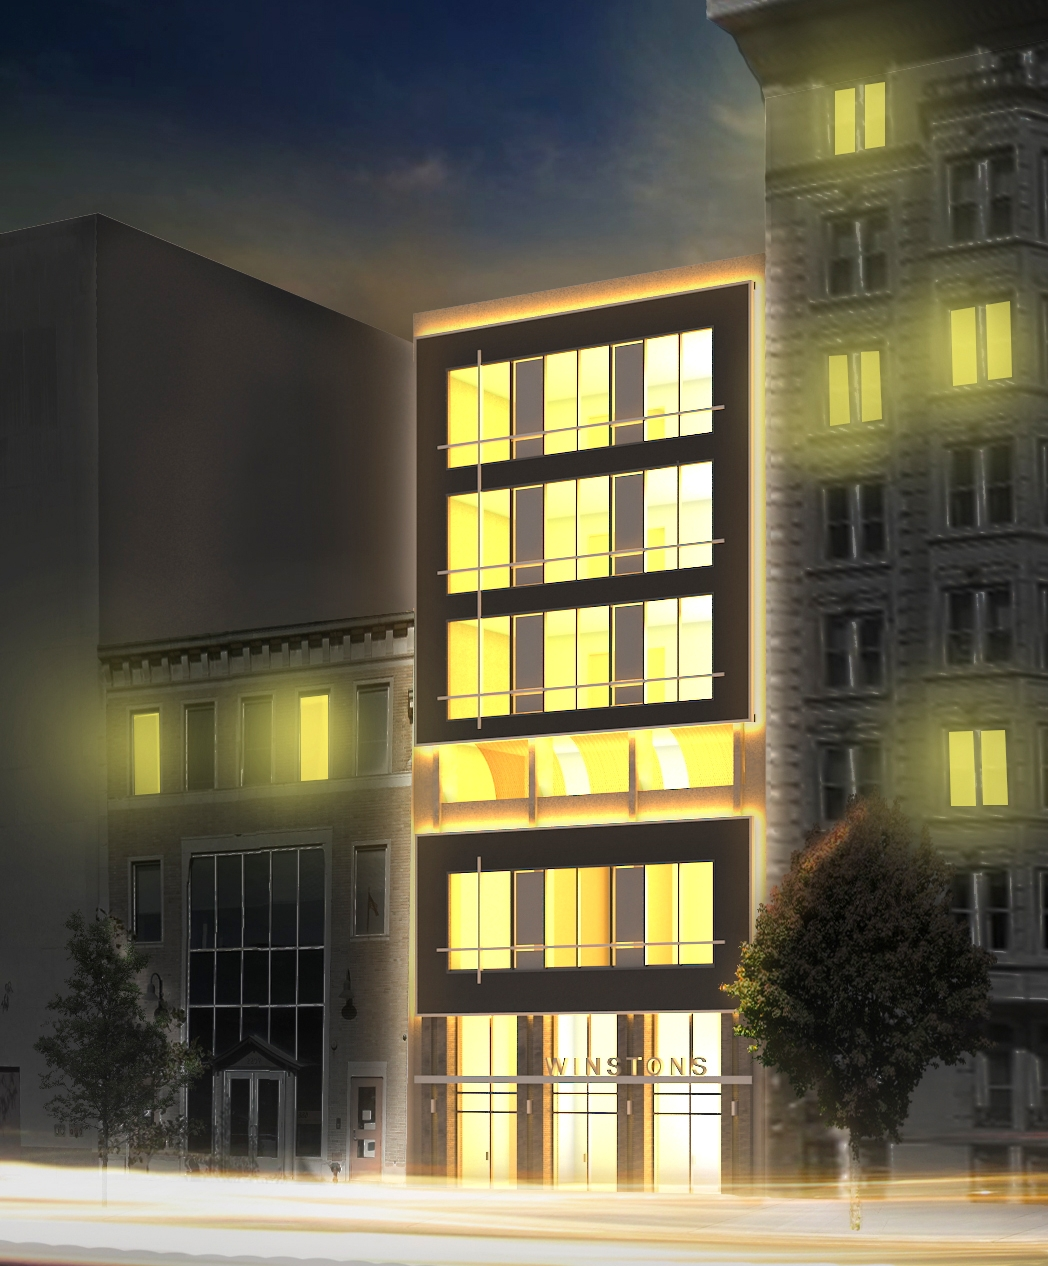 '4 Spacious Residences:3 Full Floor Units with Private Terrace and 1 Bi-Level Penthouse with 2,200 SQFT of Private Terrace' - 2207 Chestnut StreetPhiladelphia, PA 19103